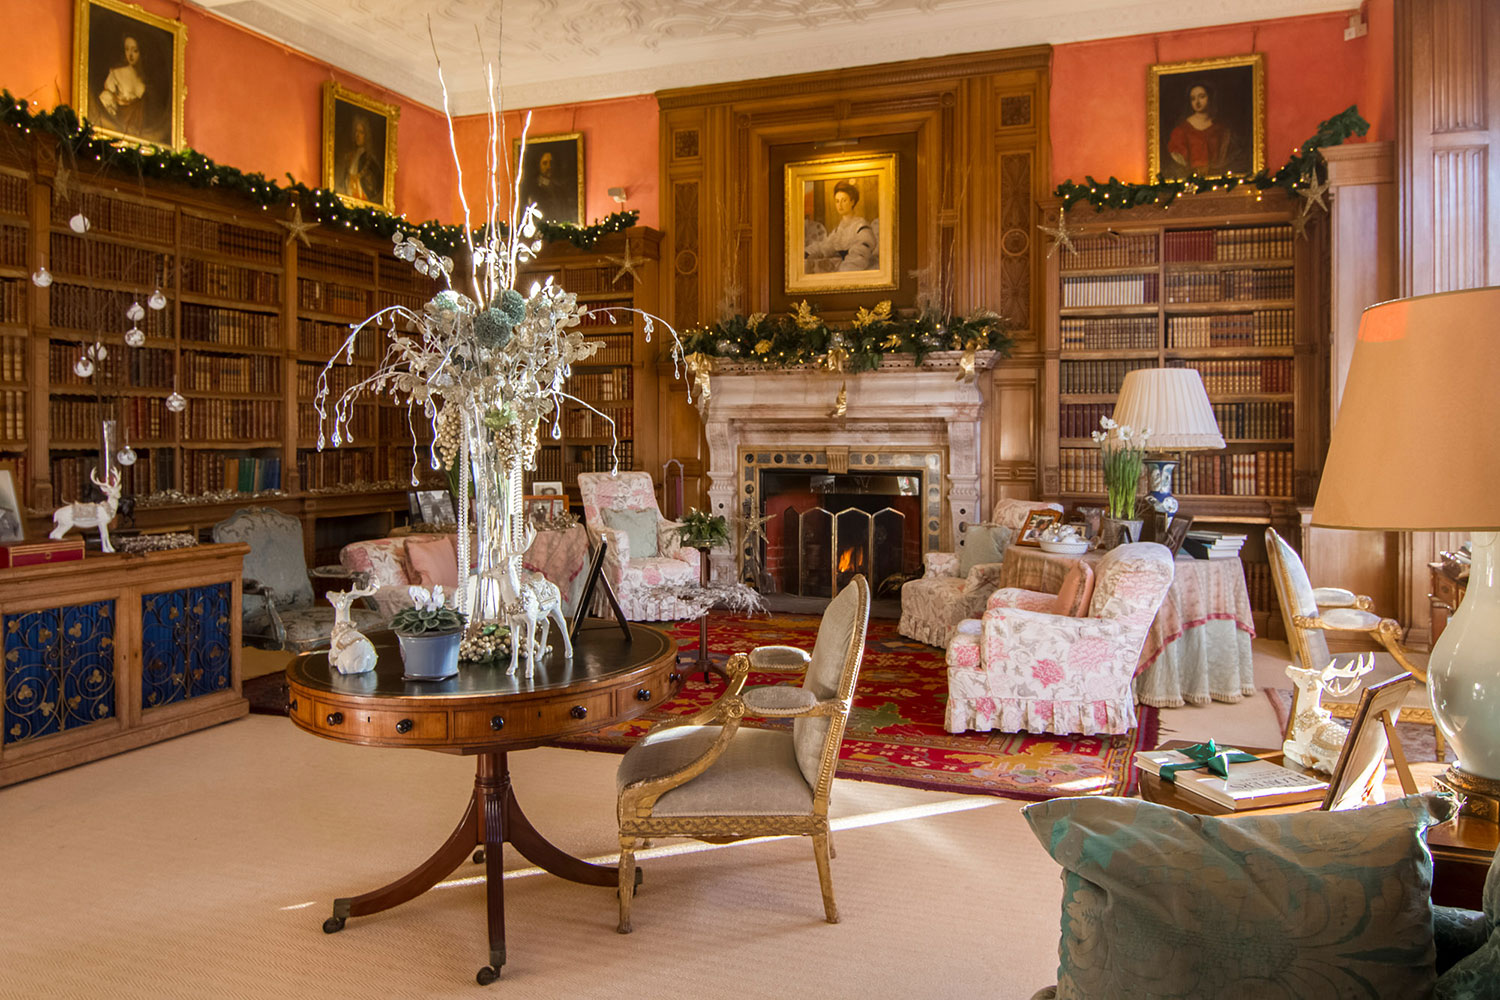 Christmas brand shoot seasonal interior photography Cumbria